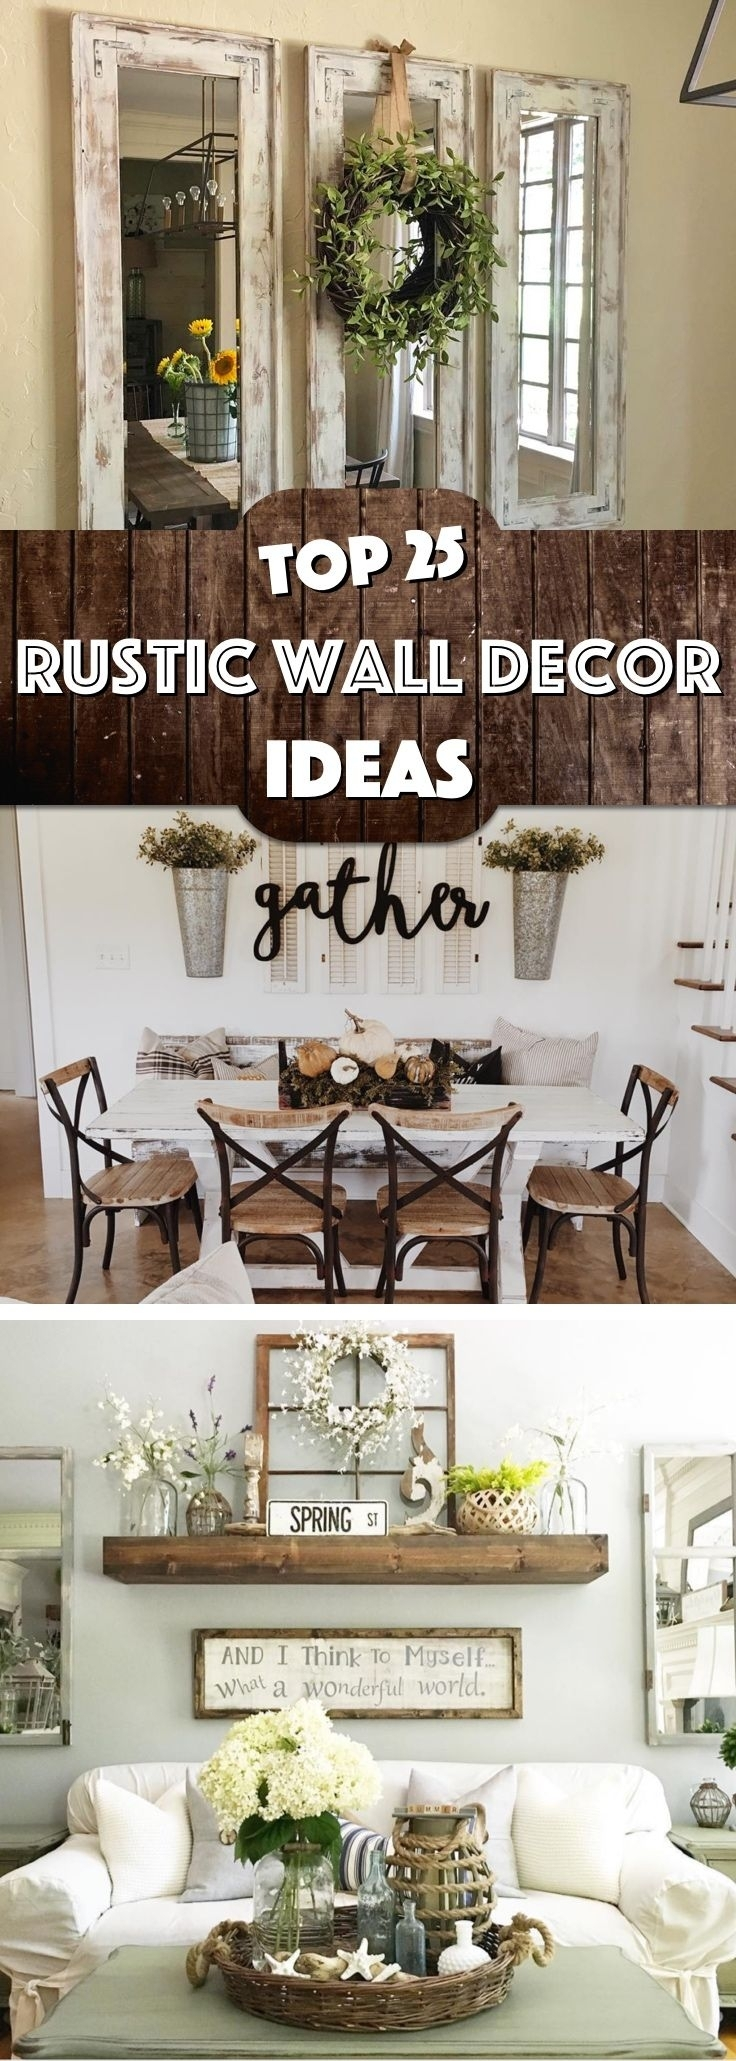 25 Must Try Rustic Wall Decor Ideas Featuring The Most Amazing Intended For Latest Rustic Wall Accents (View 2 of 15)